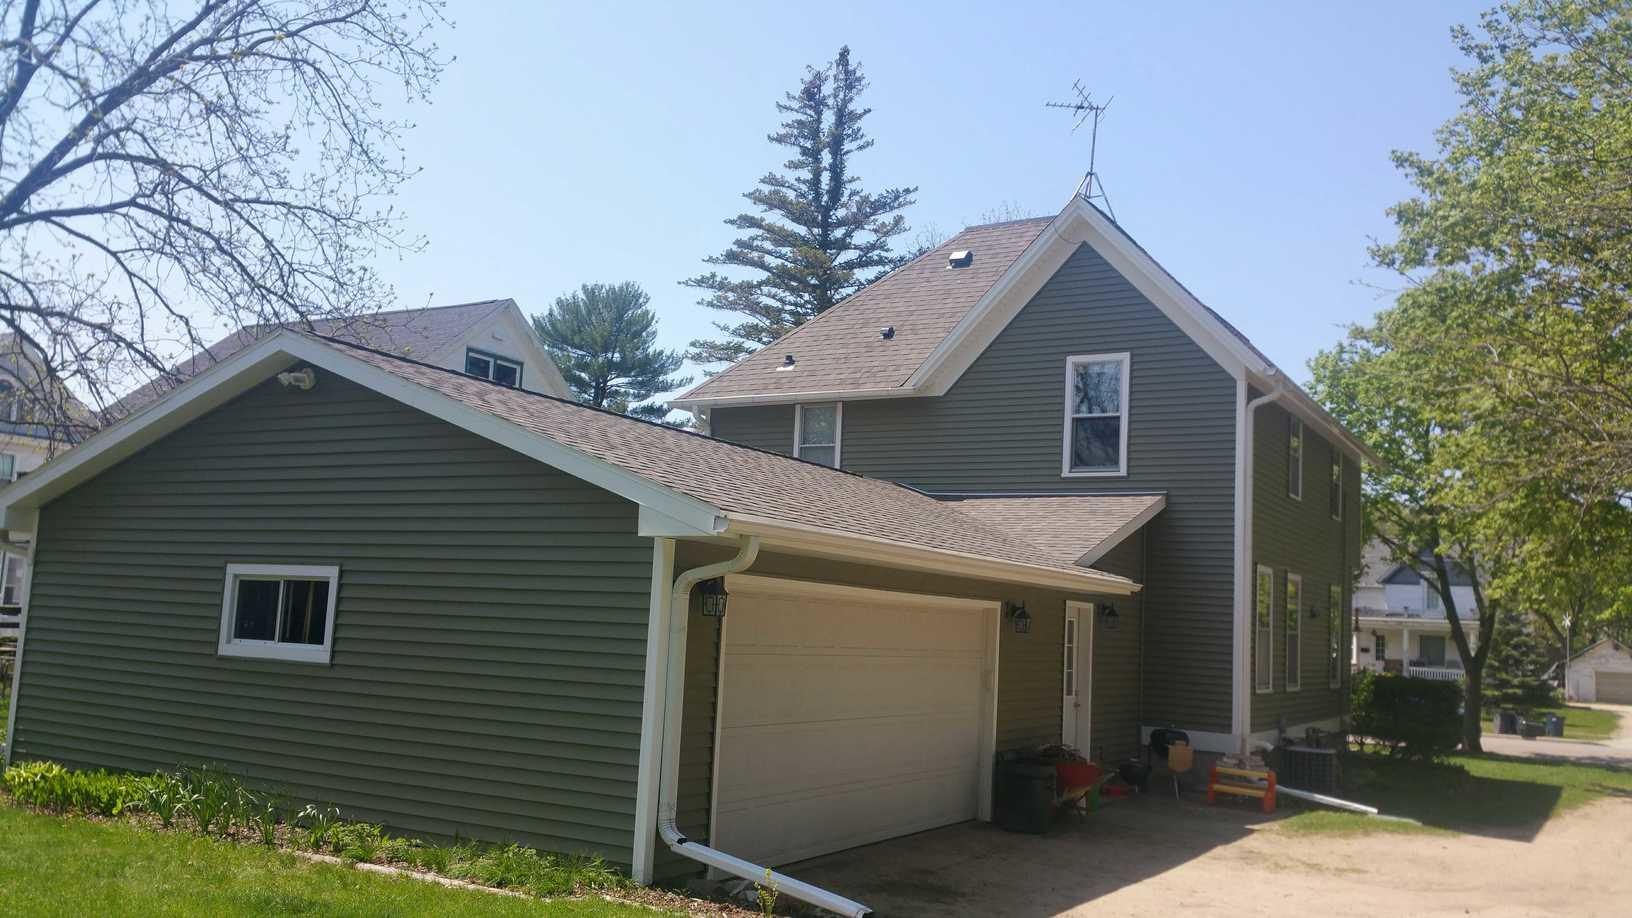 Siding New Roof Amp Siding In Prairie Du Sac Wi After Photo